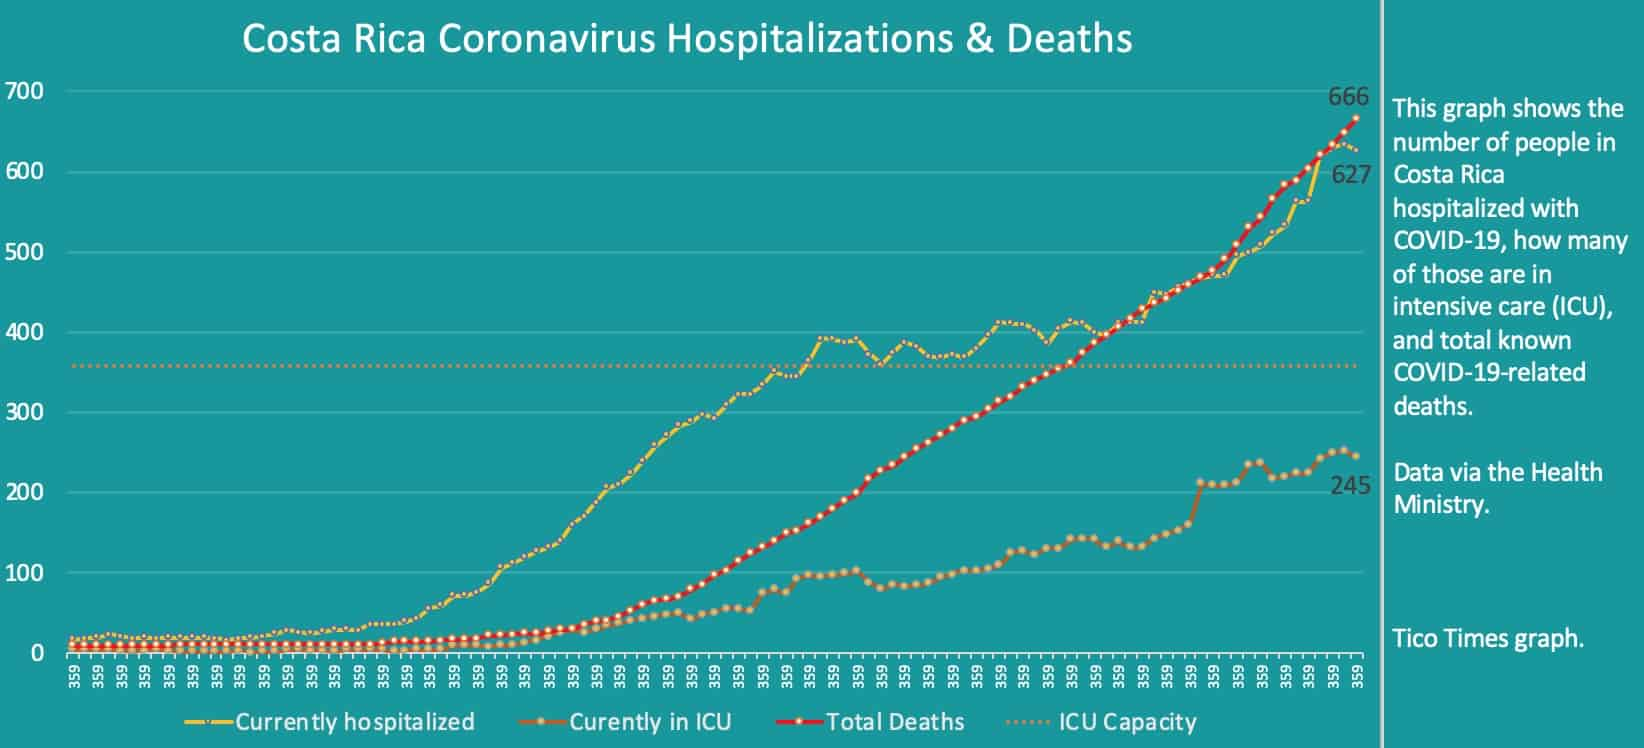 Costa Rica coronavirus hospitalizations and deaths on September 17, 2020